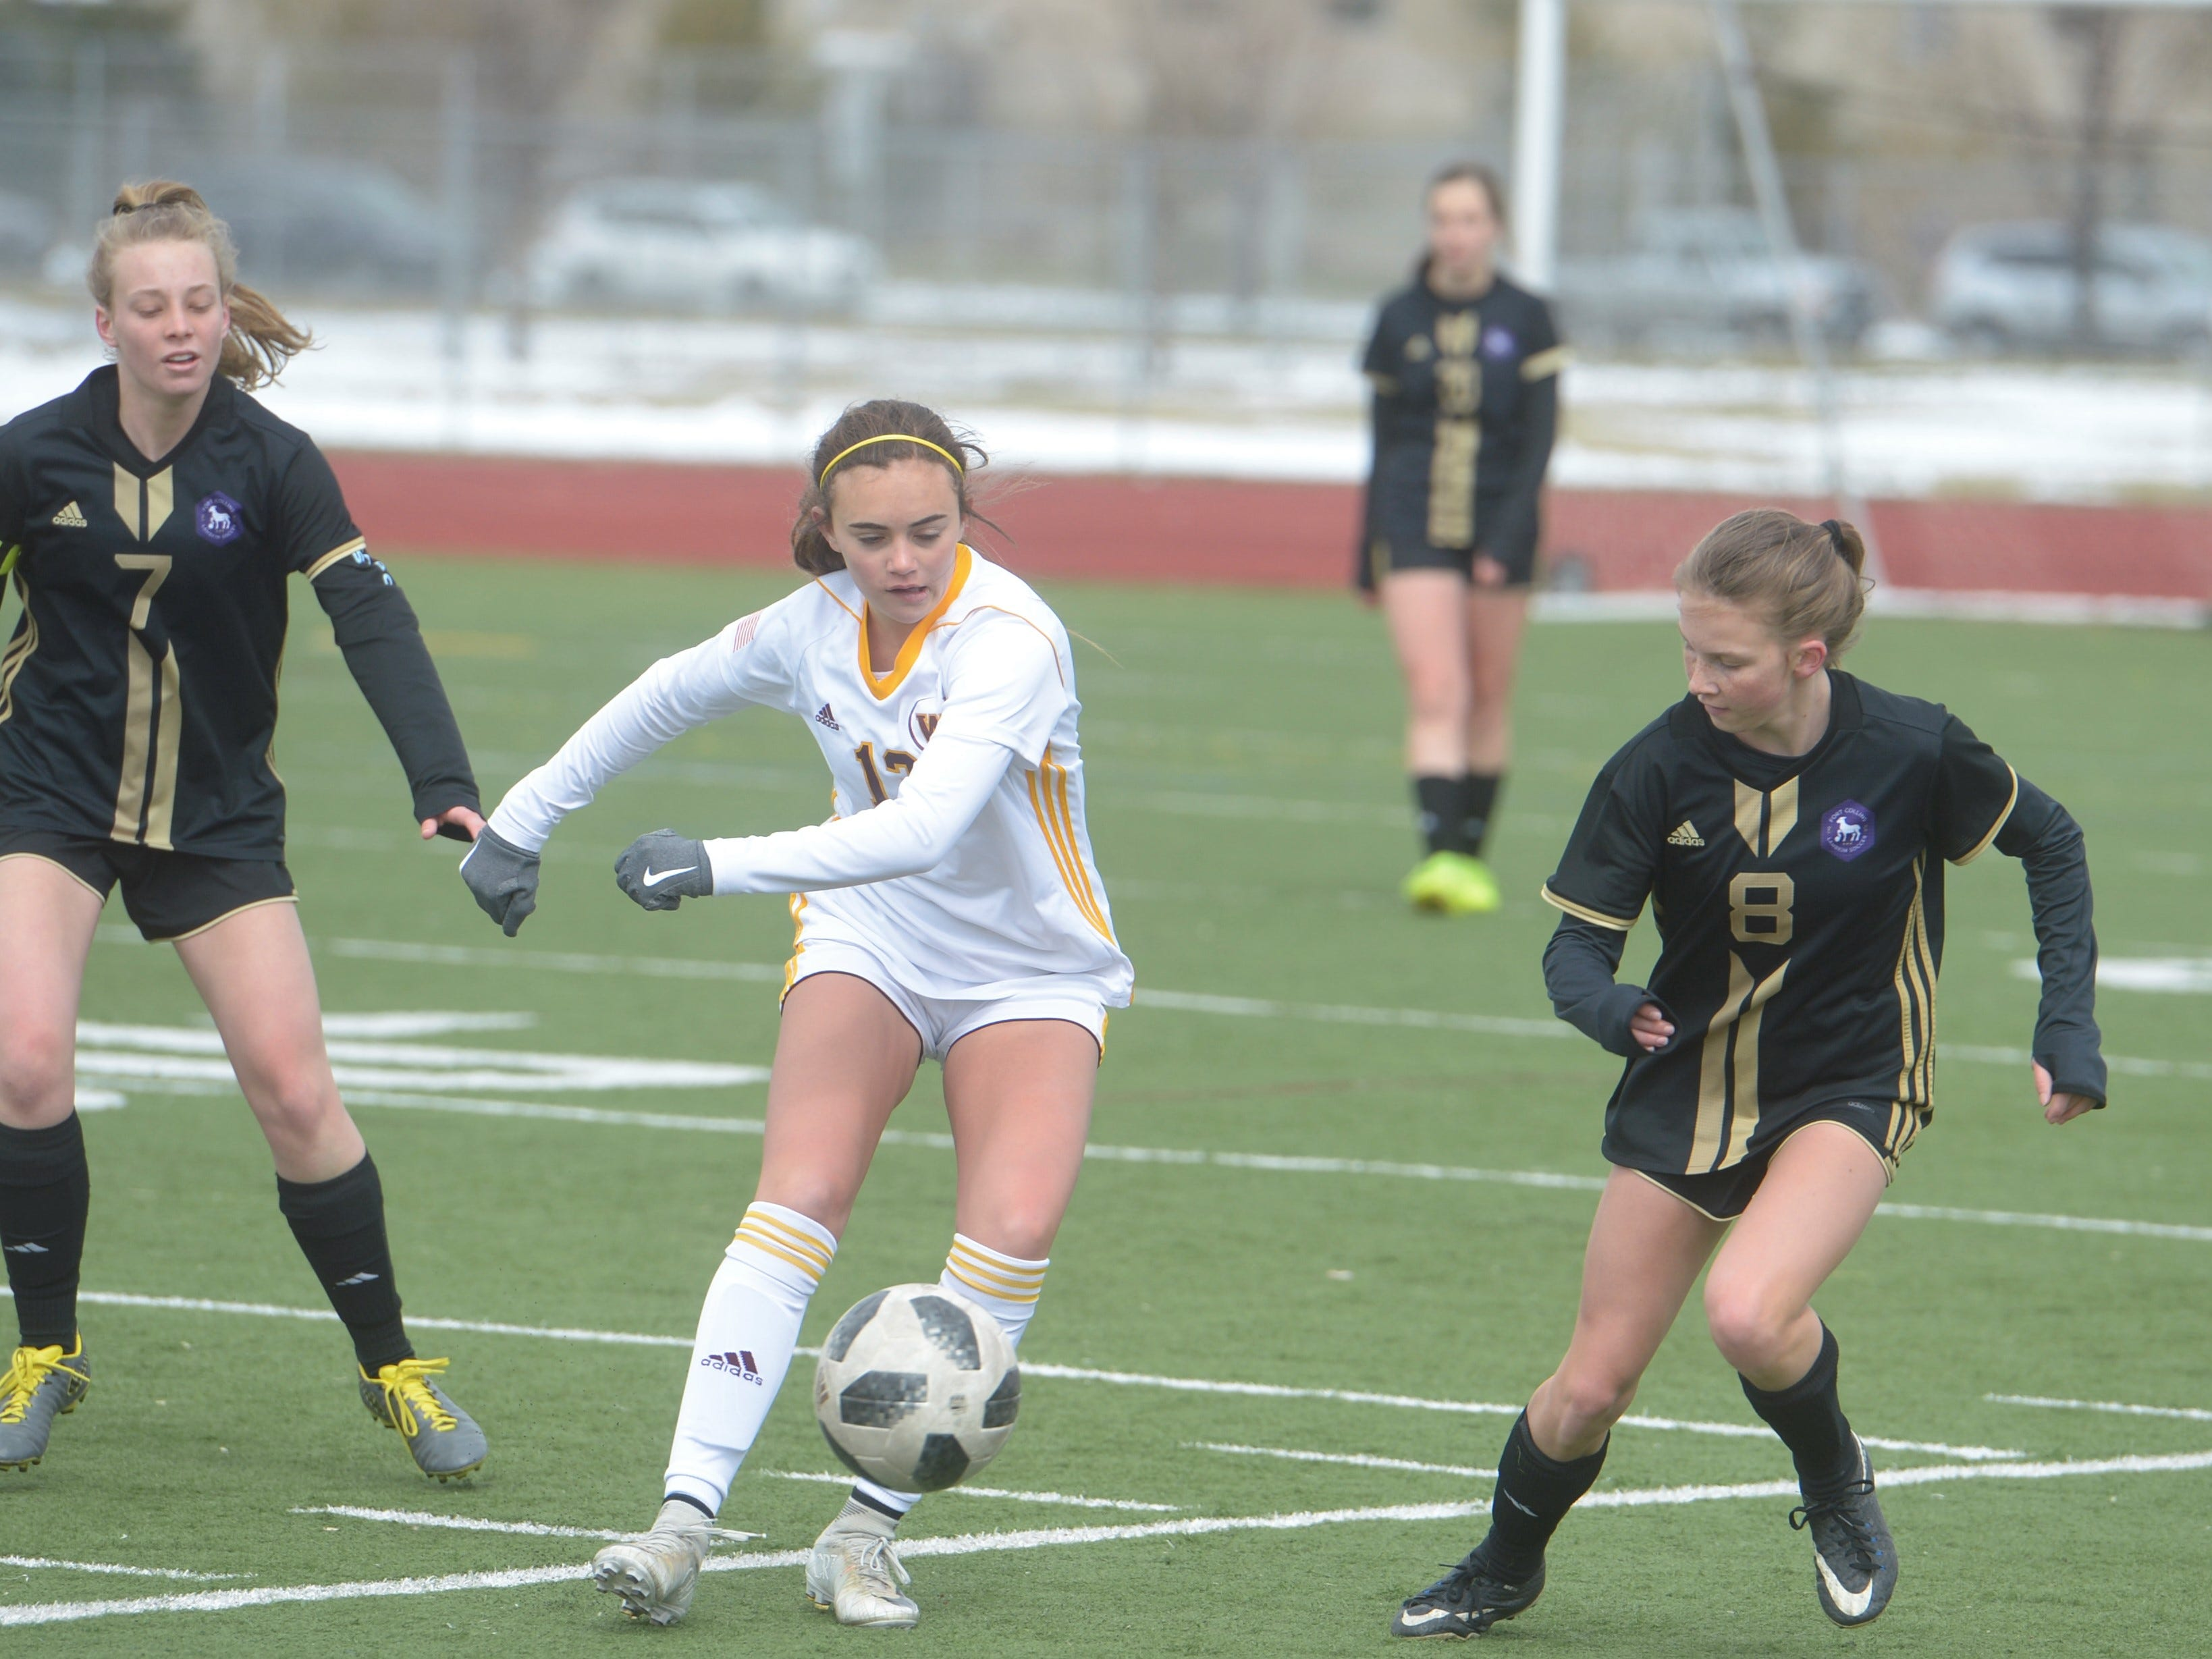 Windsor soccer player Jojo Hardy, middle, passes the ball past Fort Collins defenders during a game Saturday, April 13, 2019 at Fossil Ridge. Windsor won 3-0.